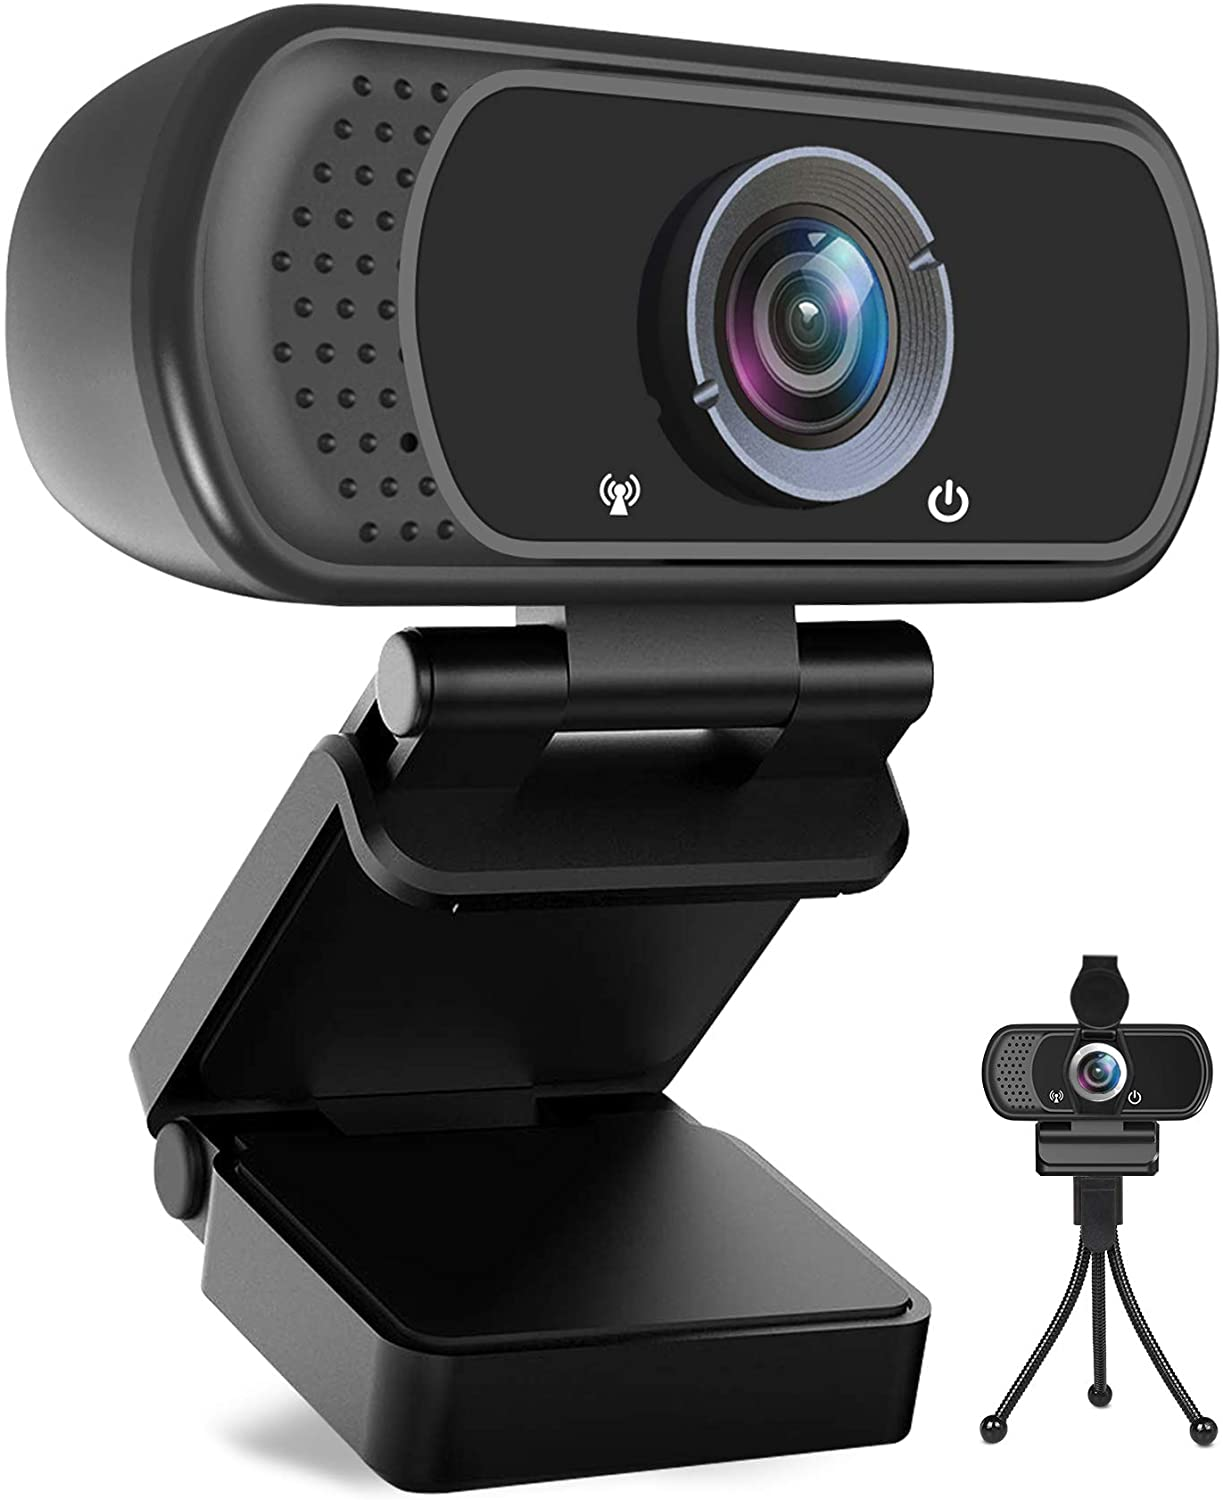 Full HD Video Camera for Computers PC Laptop Desktop Conference Study Video Calling HD1080P Webcam Skype Dual Built-in Microphones USB Plug and Play